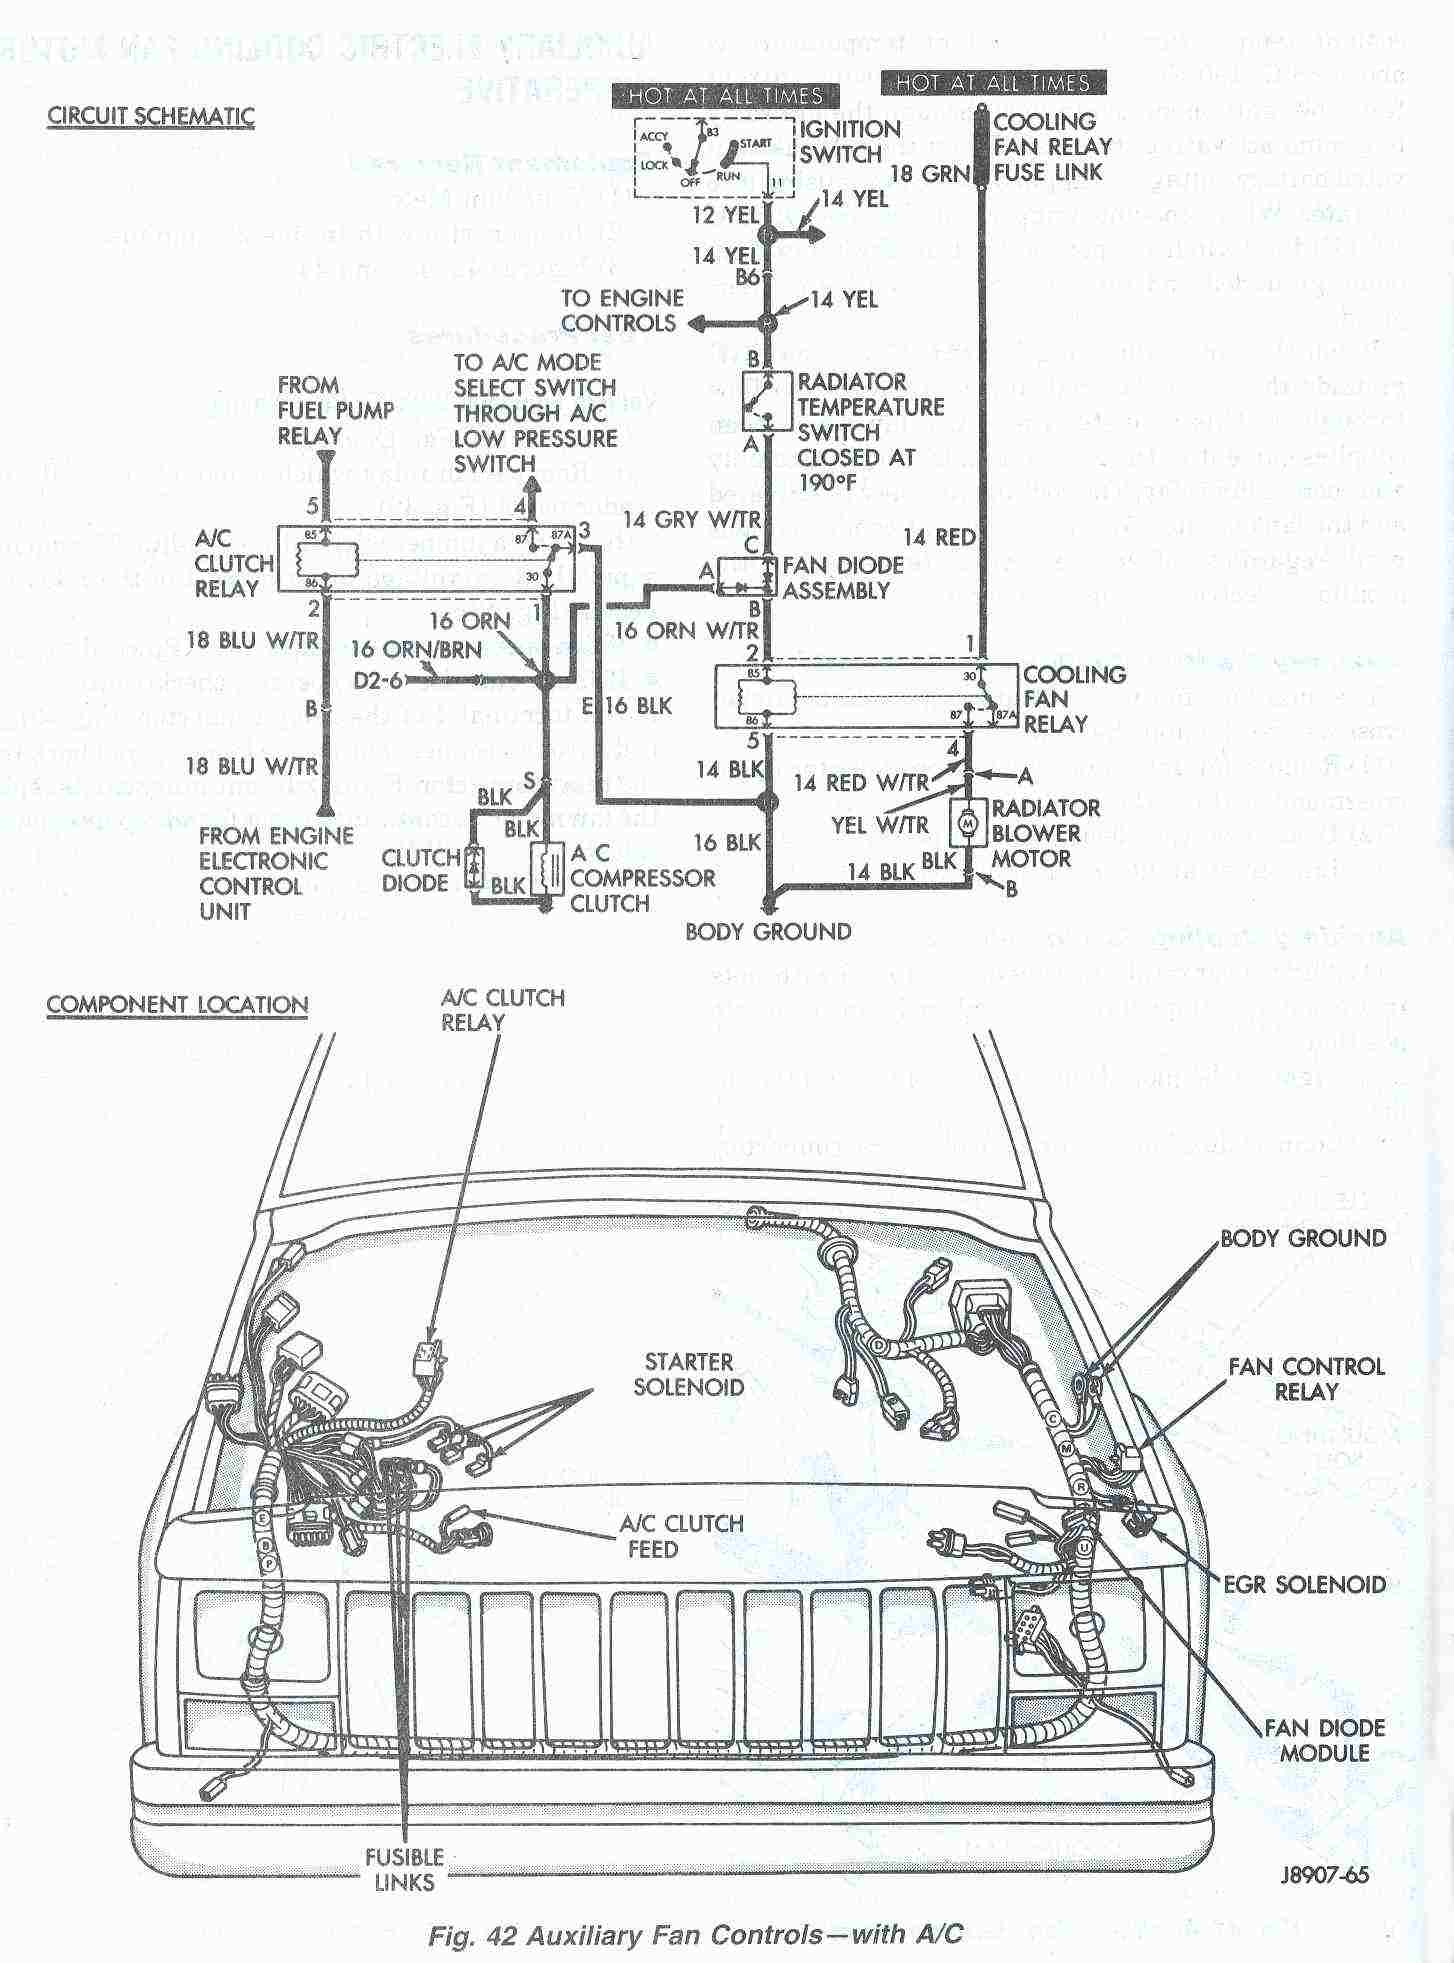 Auxiliary_Fan_Schematic_Fig_42 jeep cherokee cooling system electric cooling fan 2001 Jeep Cherokee Fan Relay at gsmx.co